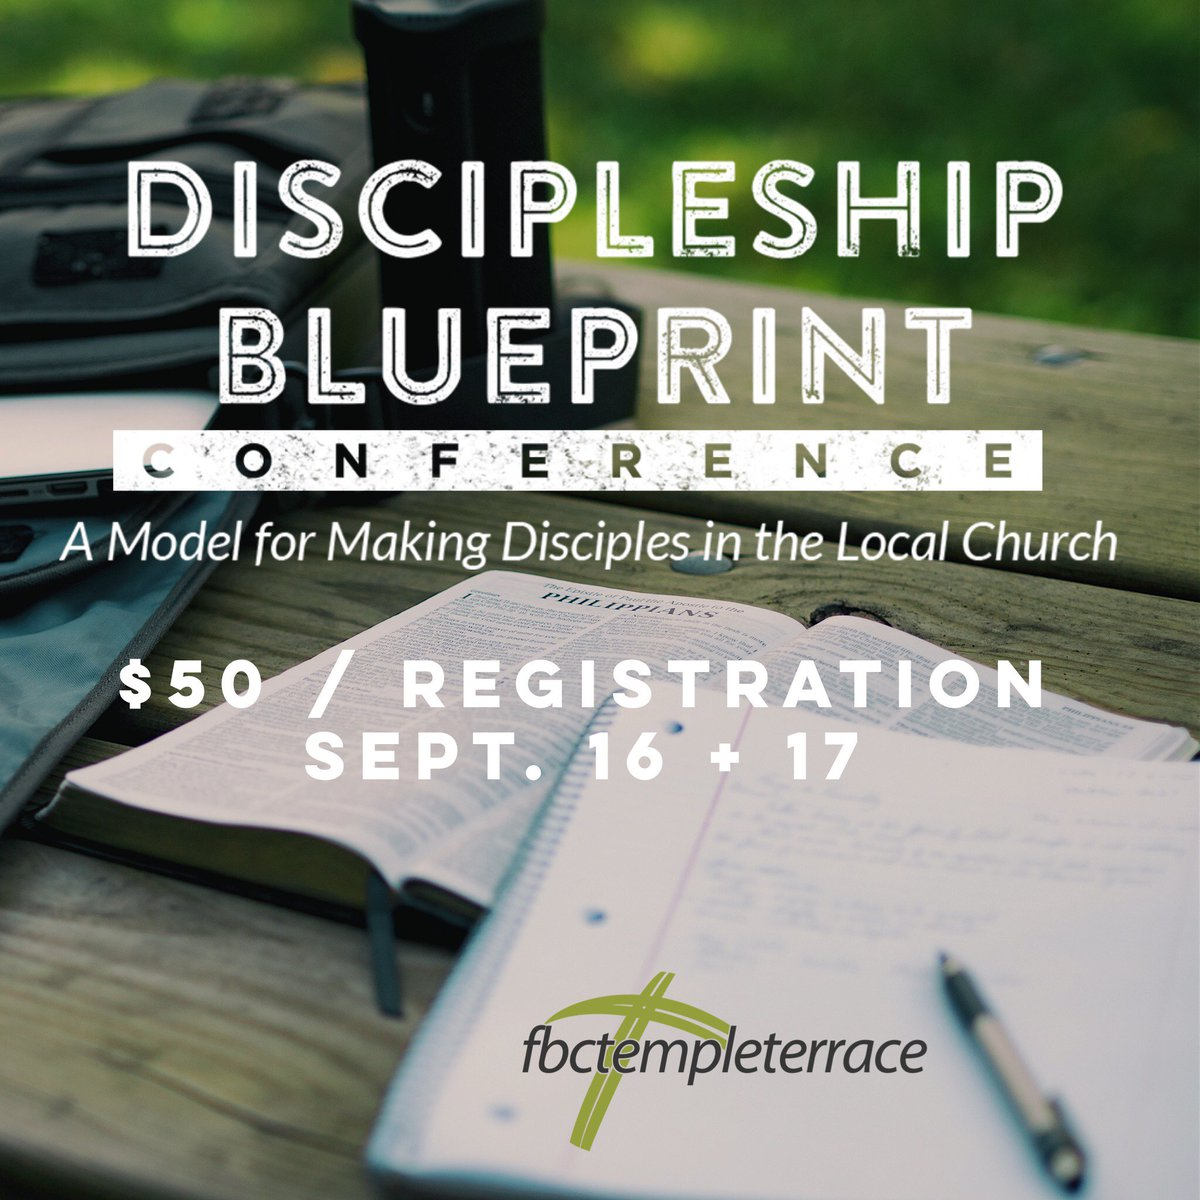 Fbc temple terrace on twitter getting excited for the discipleship fbc temple terrace on twitter getting excited for the discipleship blueprint conference this fri sat register now at httpst2abp5t5orm malvernweather Image collections